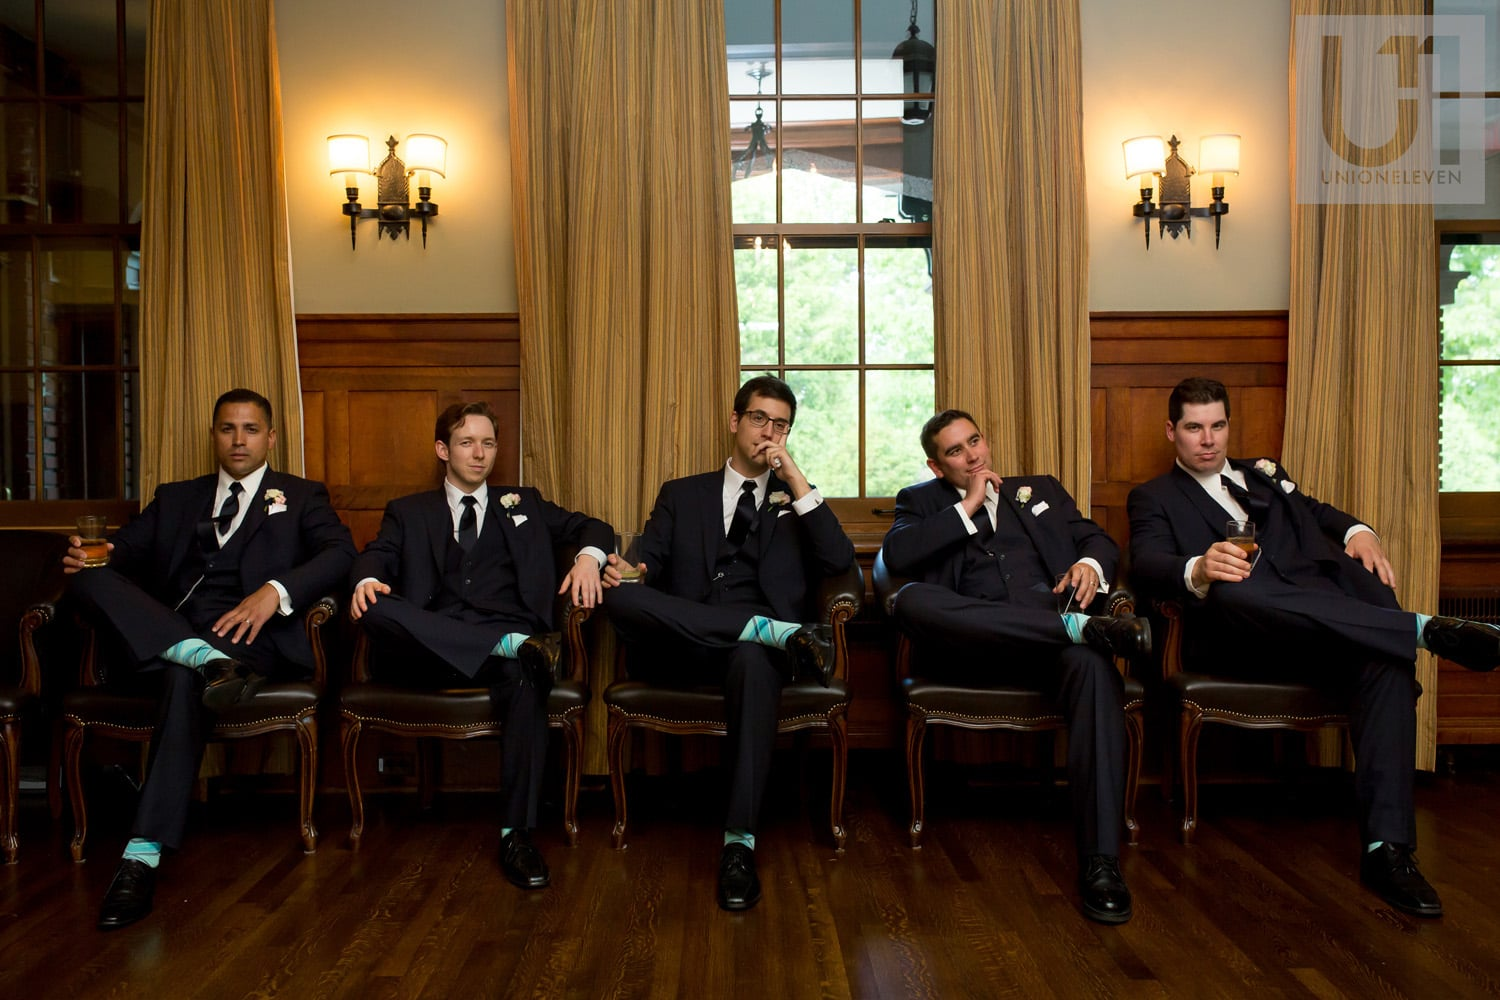 groomsmen sitting on chairs pensively at the Royal Ottawa Golf Club during wedding reception